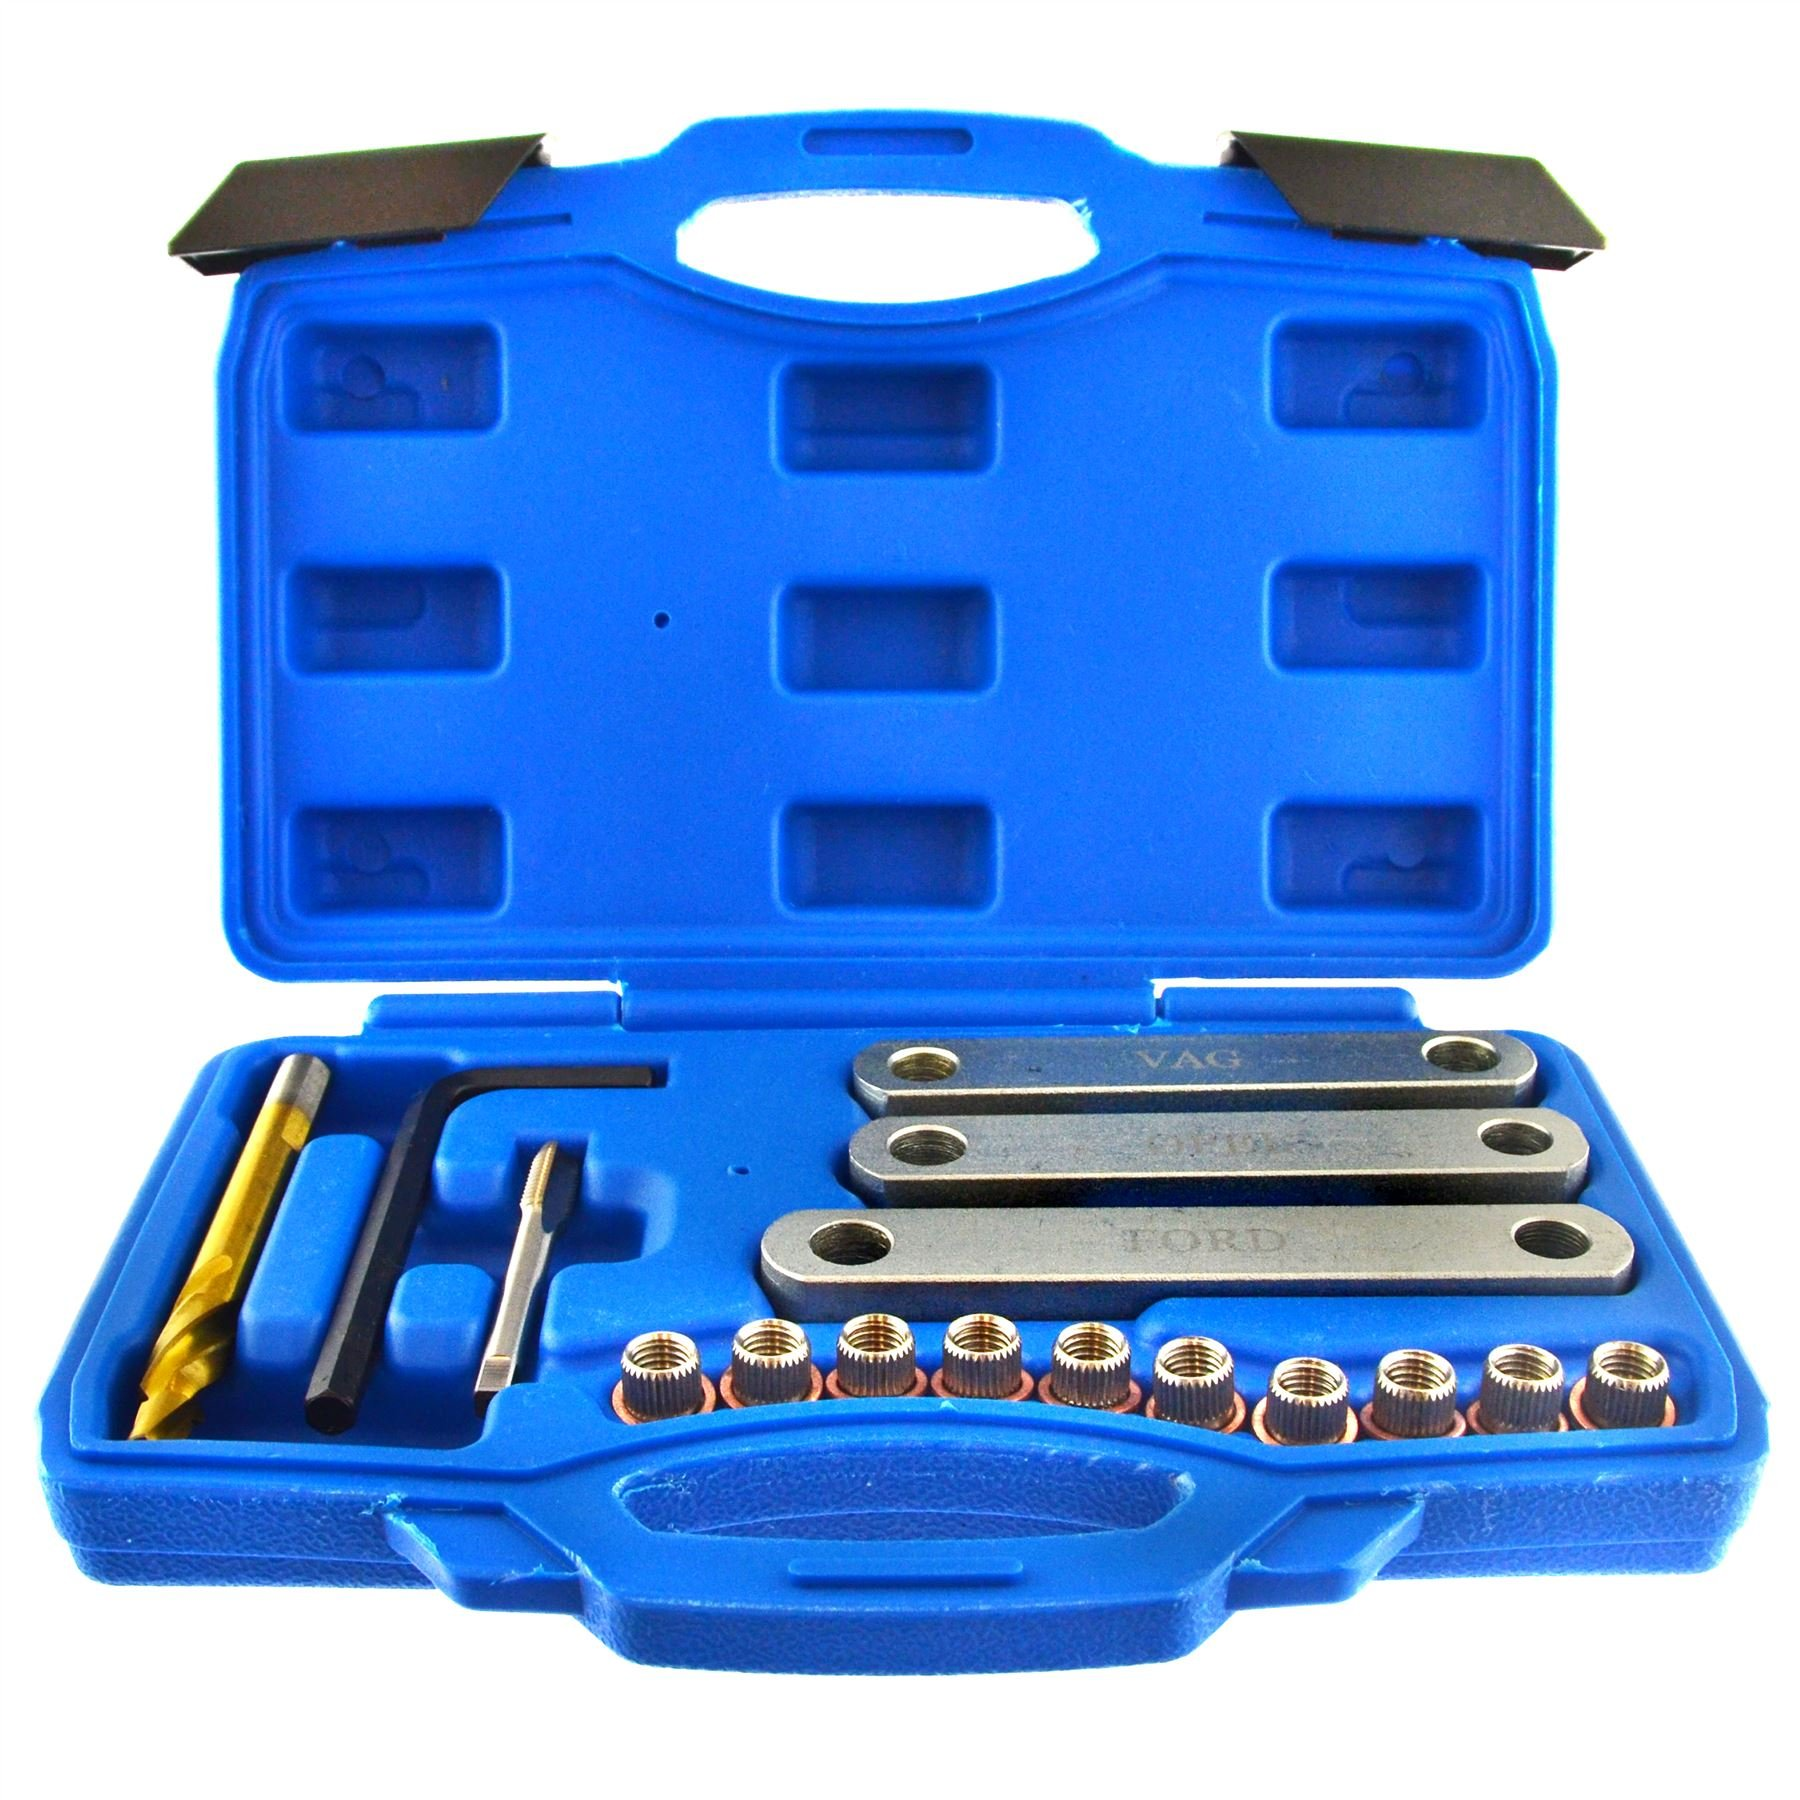 AB Tools-US Pro Brake Calliper Guide Thread Repair Kit Core Drill VAG VW Vauxhall Ford Seat by AB Tools-US Pro (Image #1)